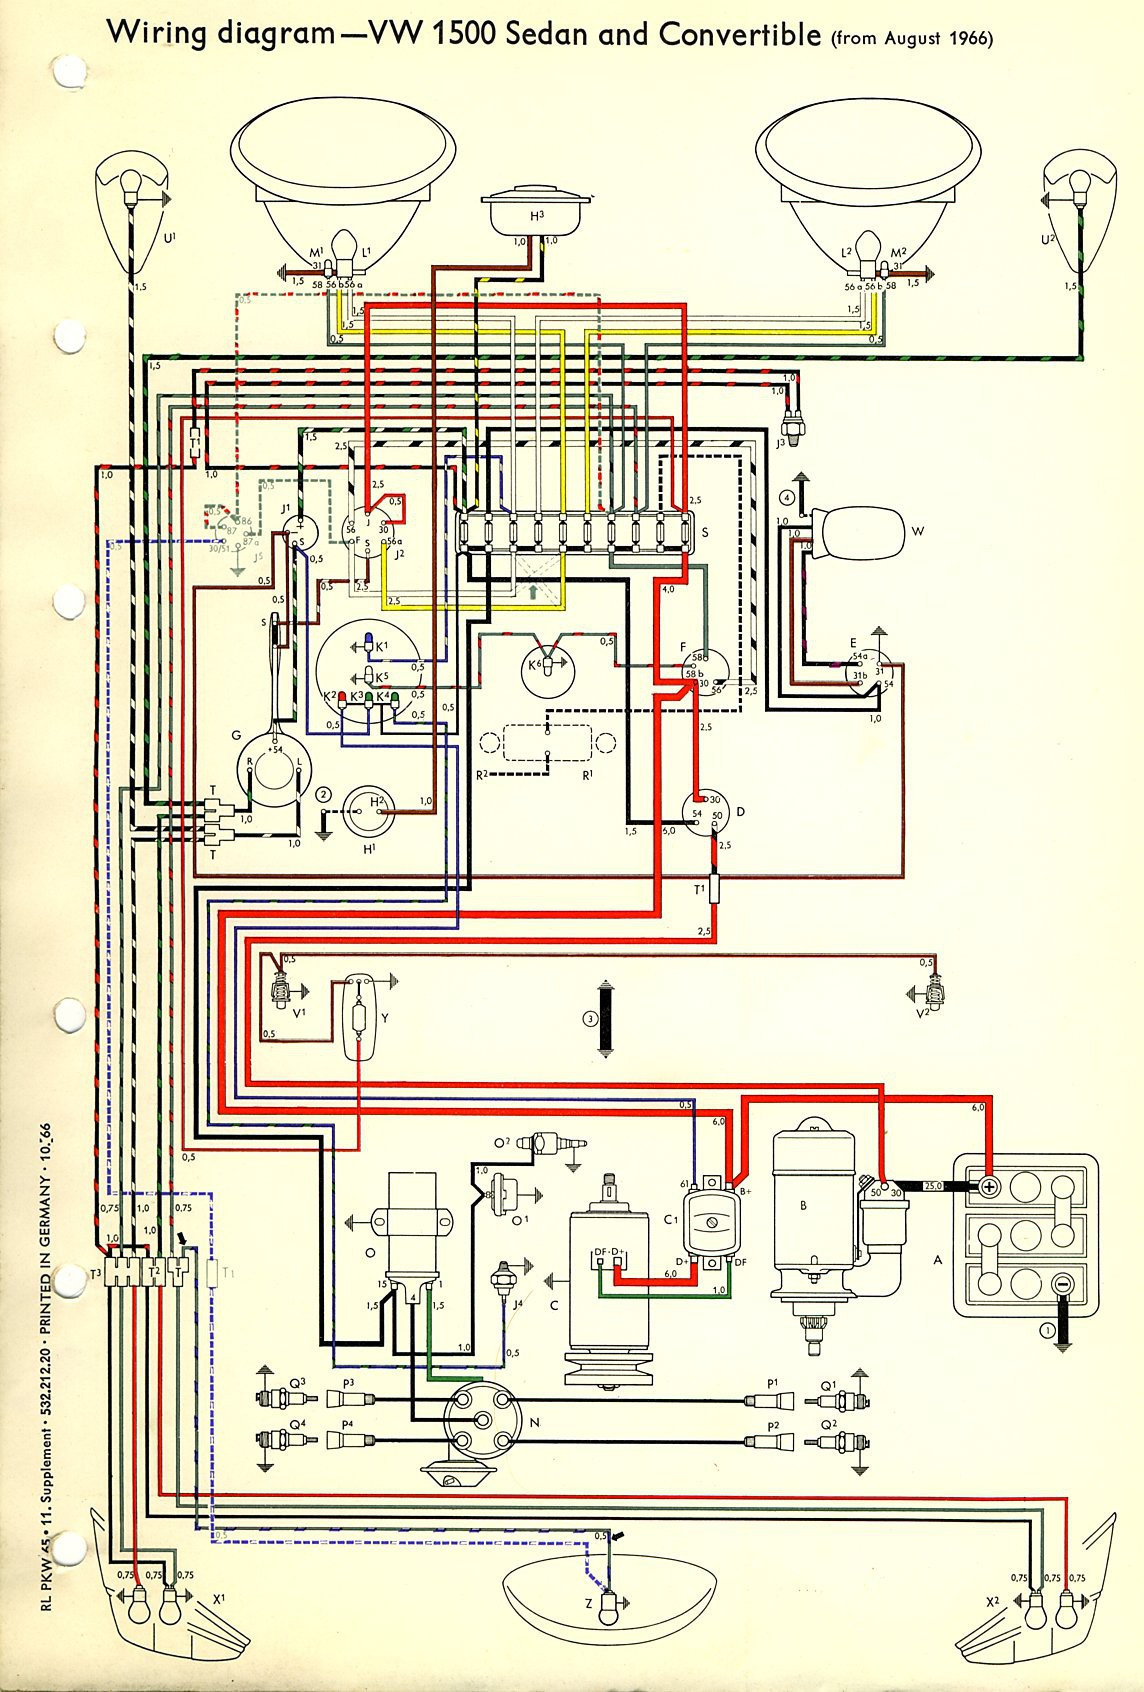 Beetle Generator Wiring Diagram Book Of Wiring Diagram Replace - Wiring Diagram Replace Generator With Alternator